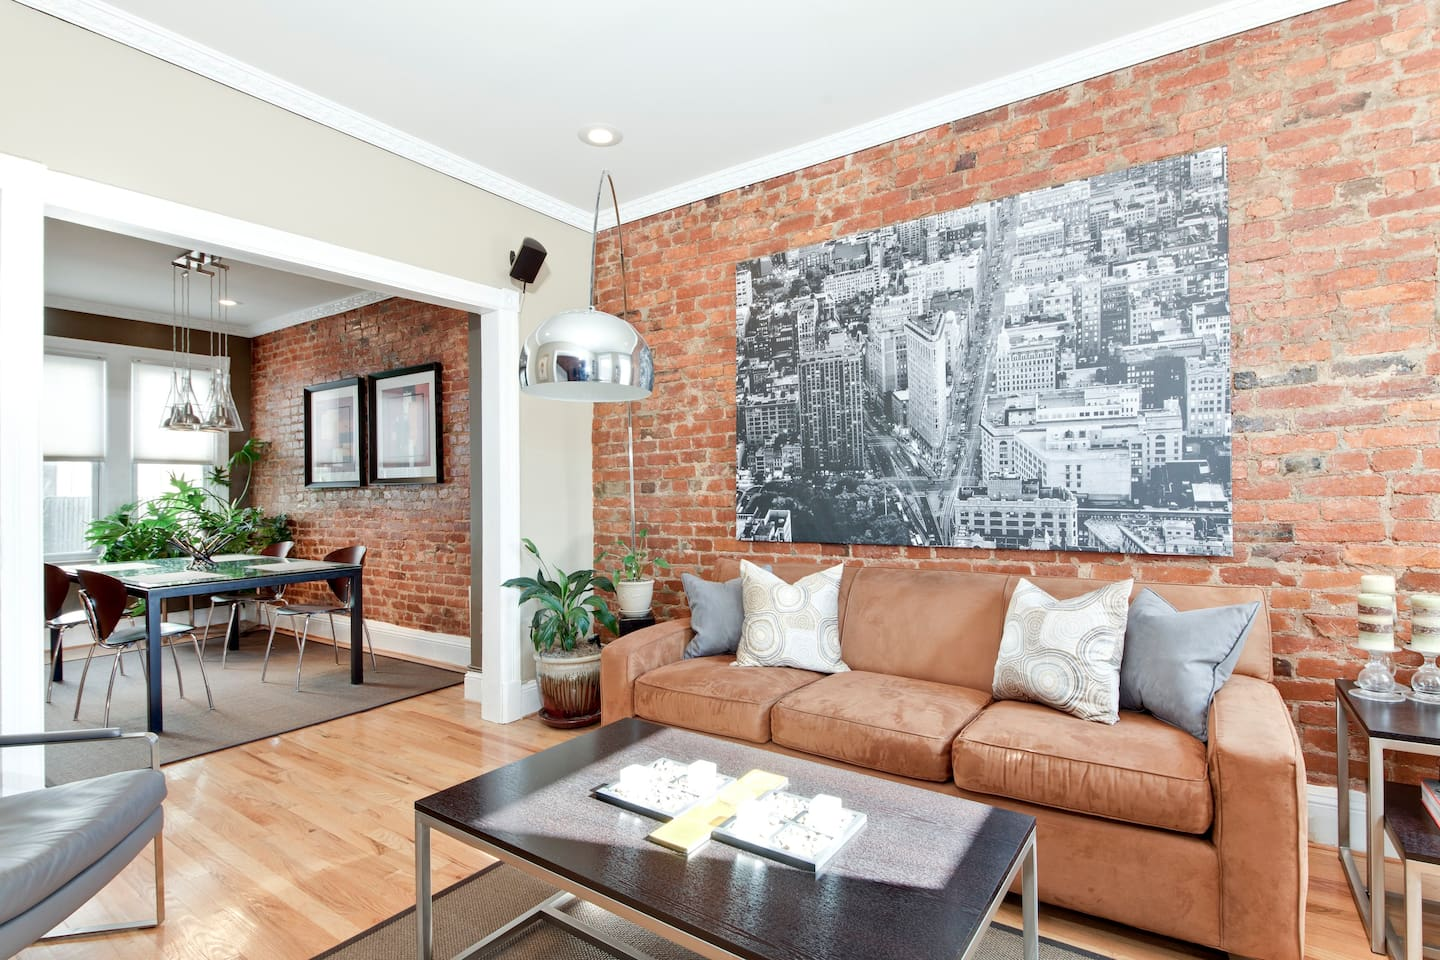 Exposed brick gives this house a lot of character